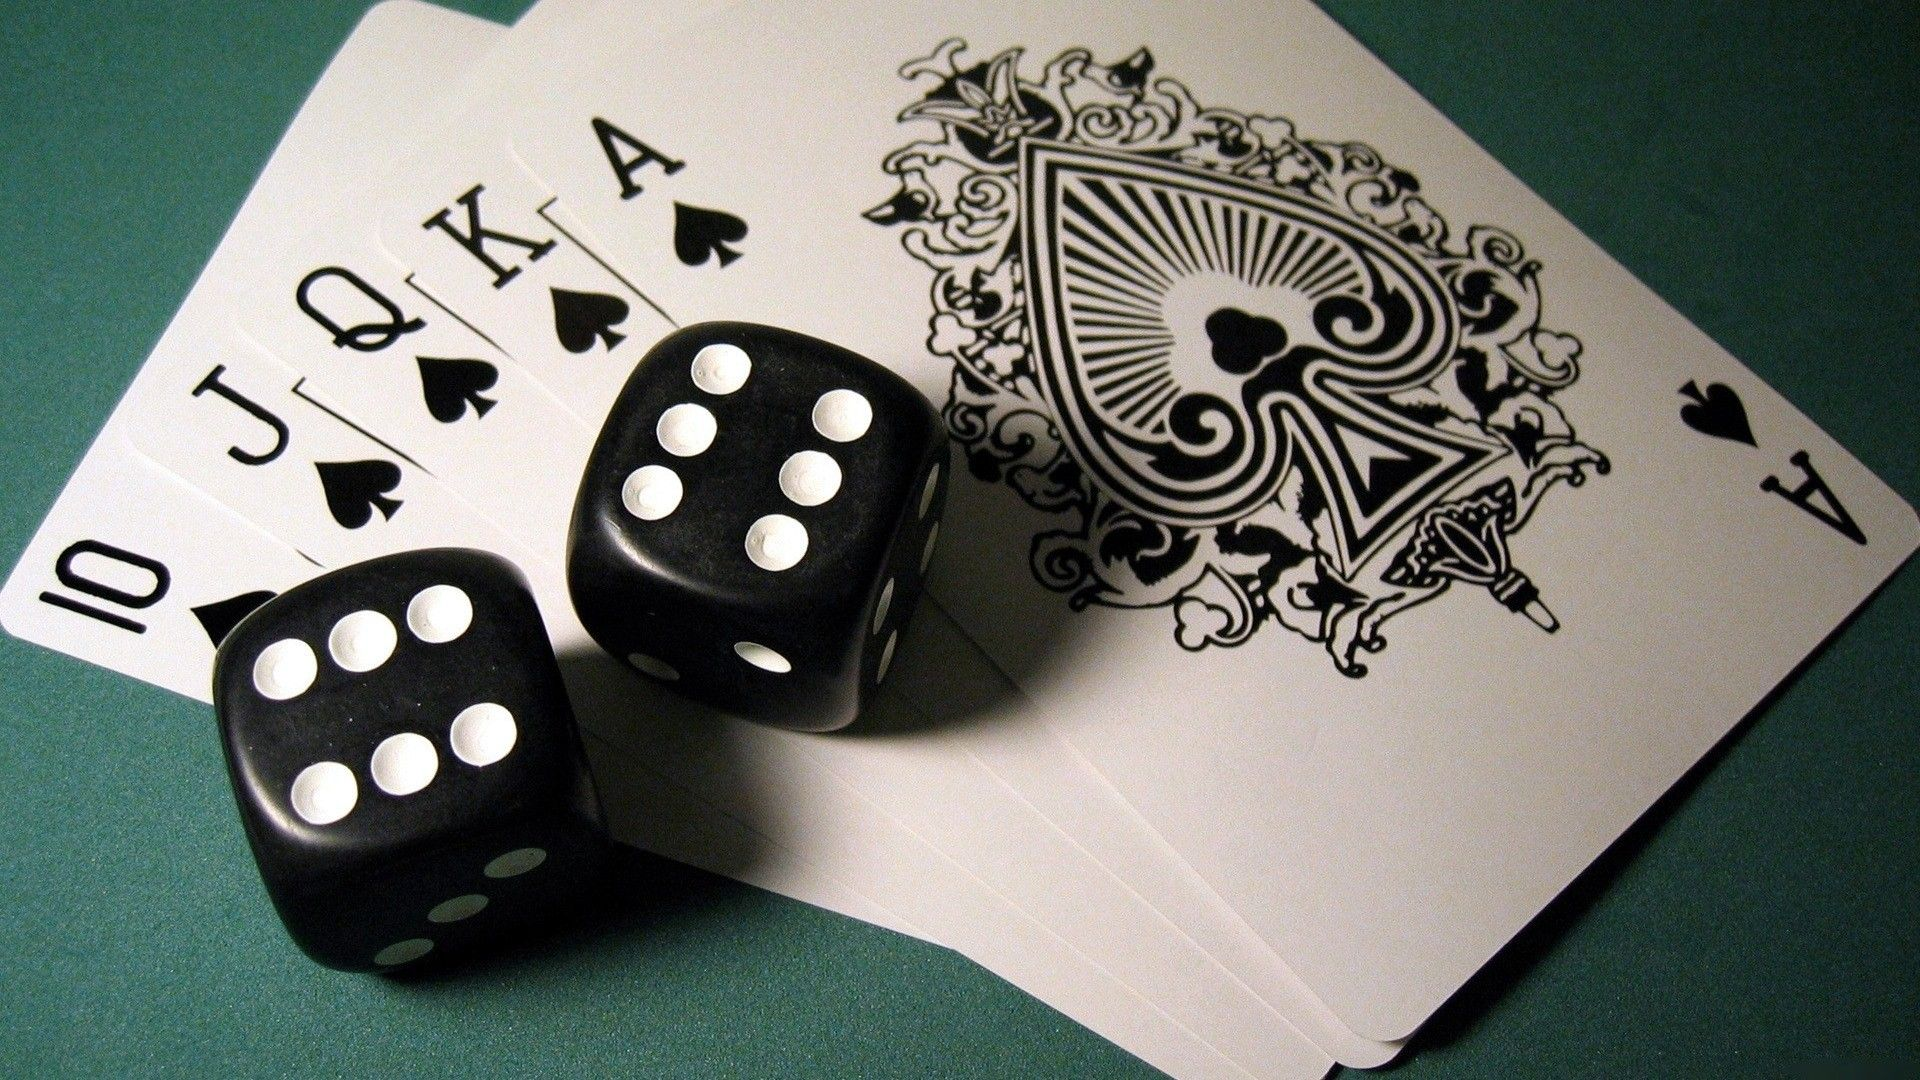 Love Playing Cards And Dice Wallpaper HD